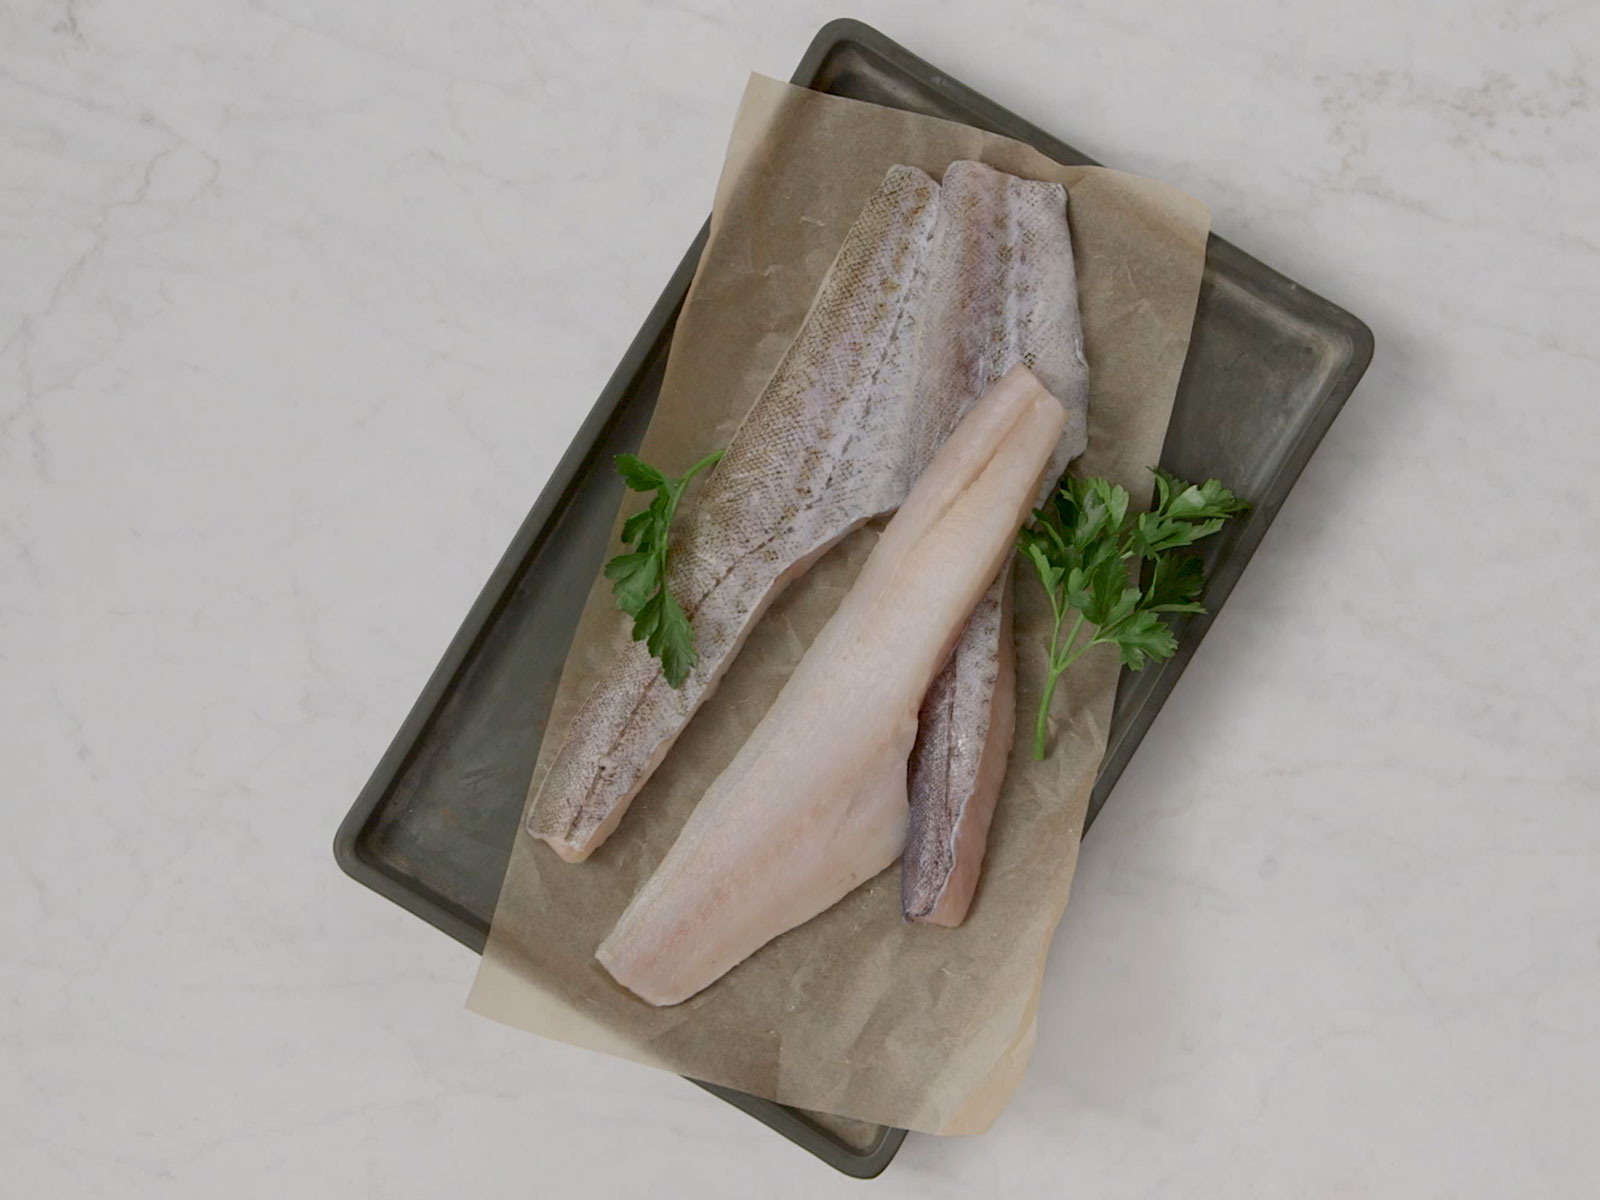 Wild Alaska Pollock Fillets 4-6 oz Skin-On, Boneless 422653